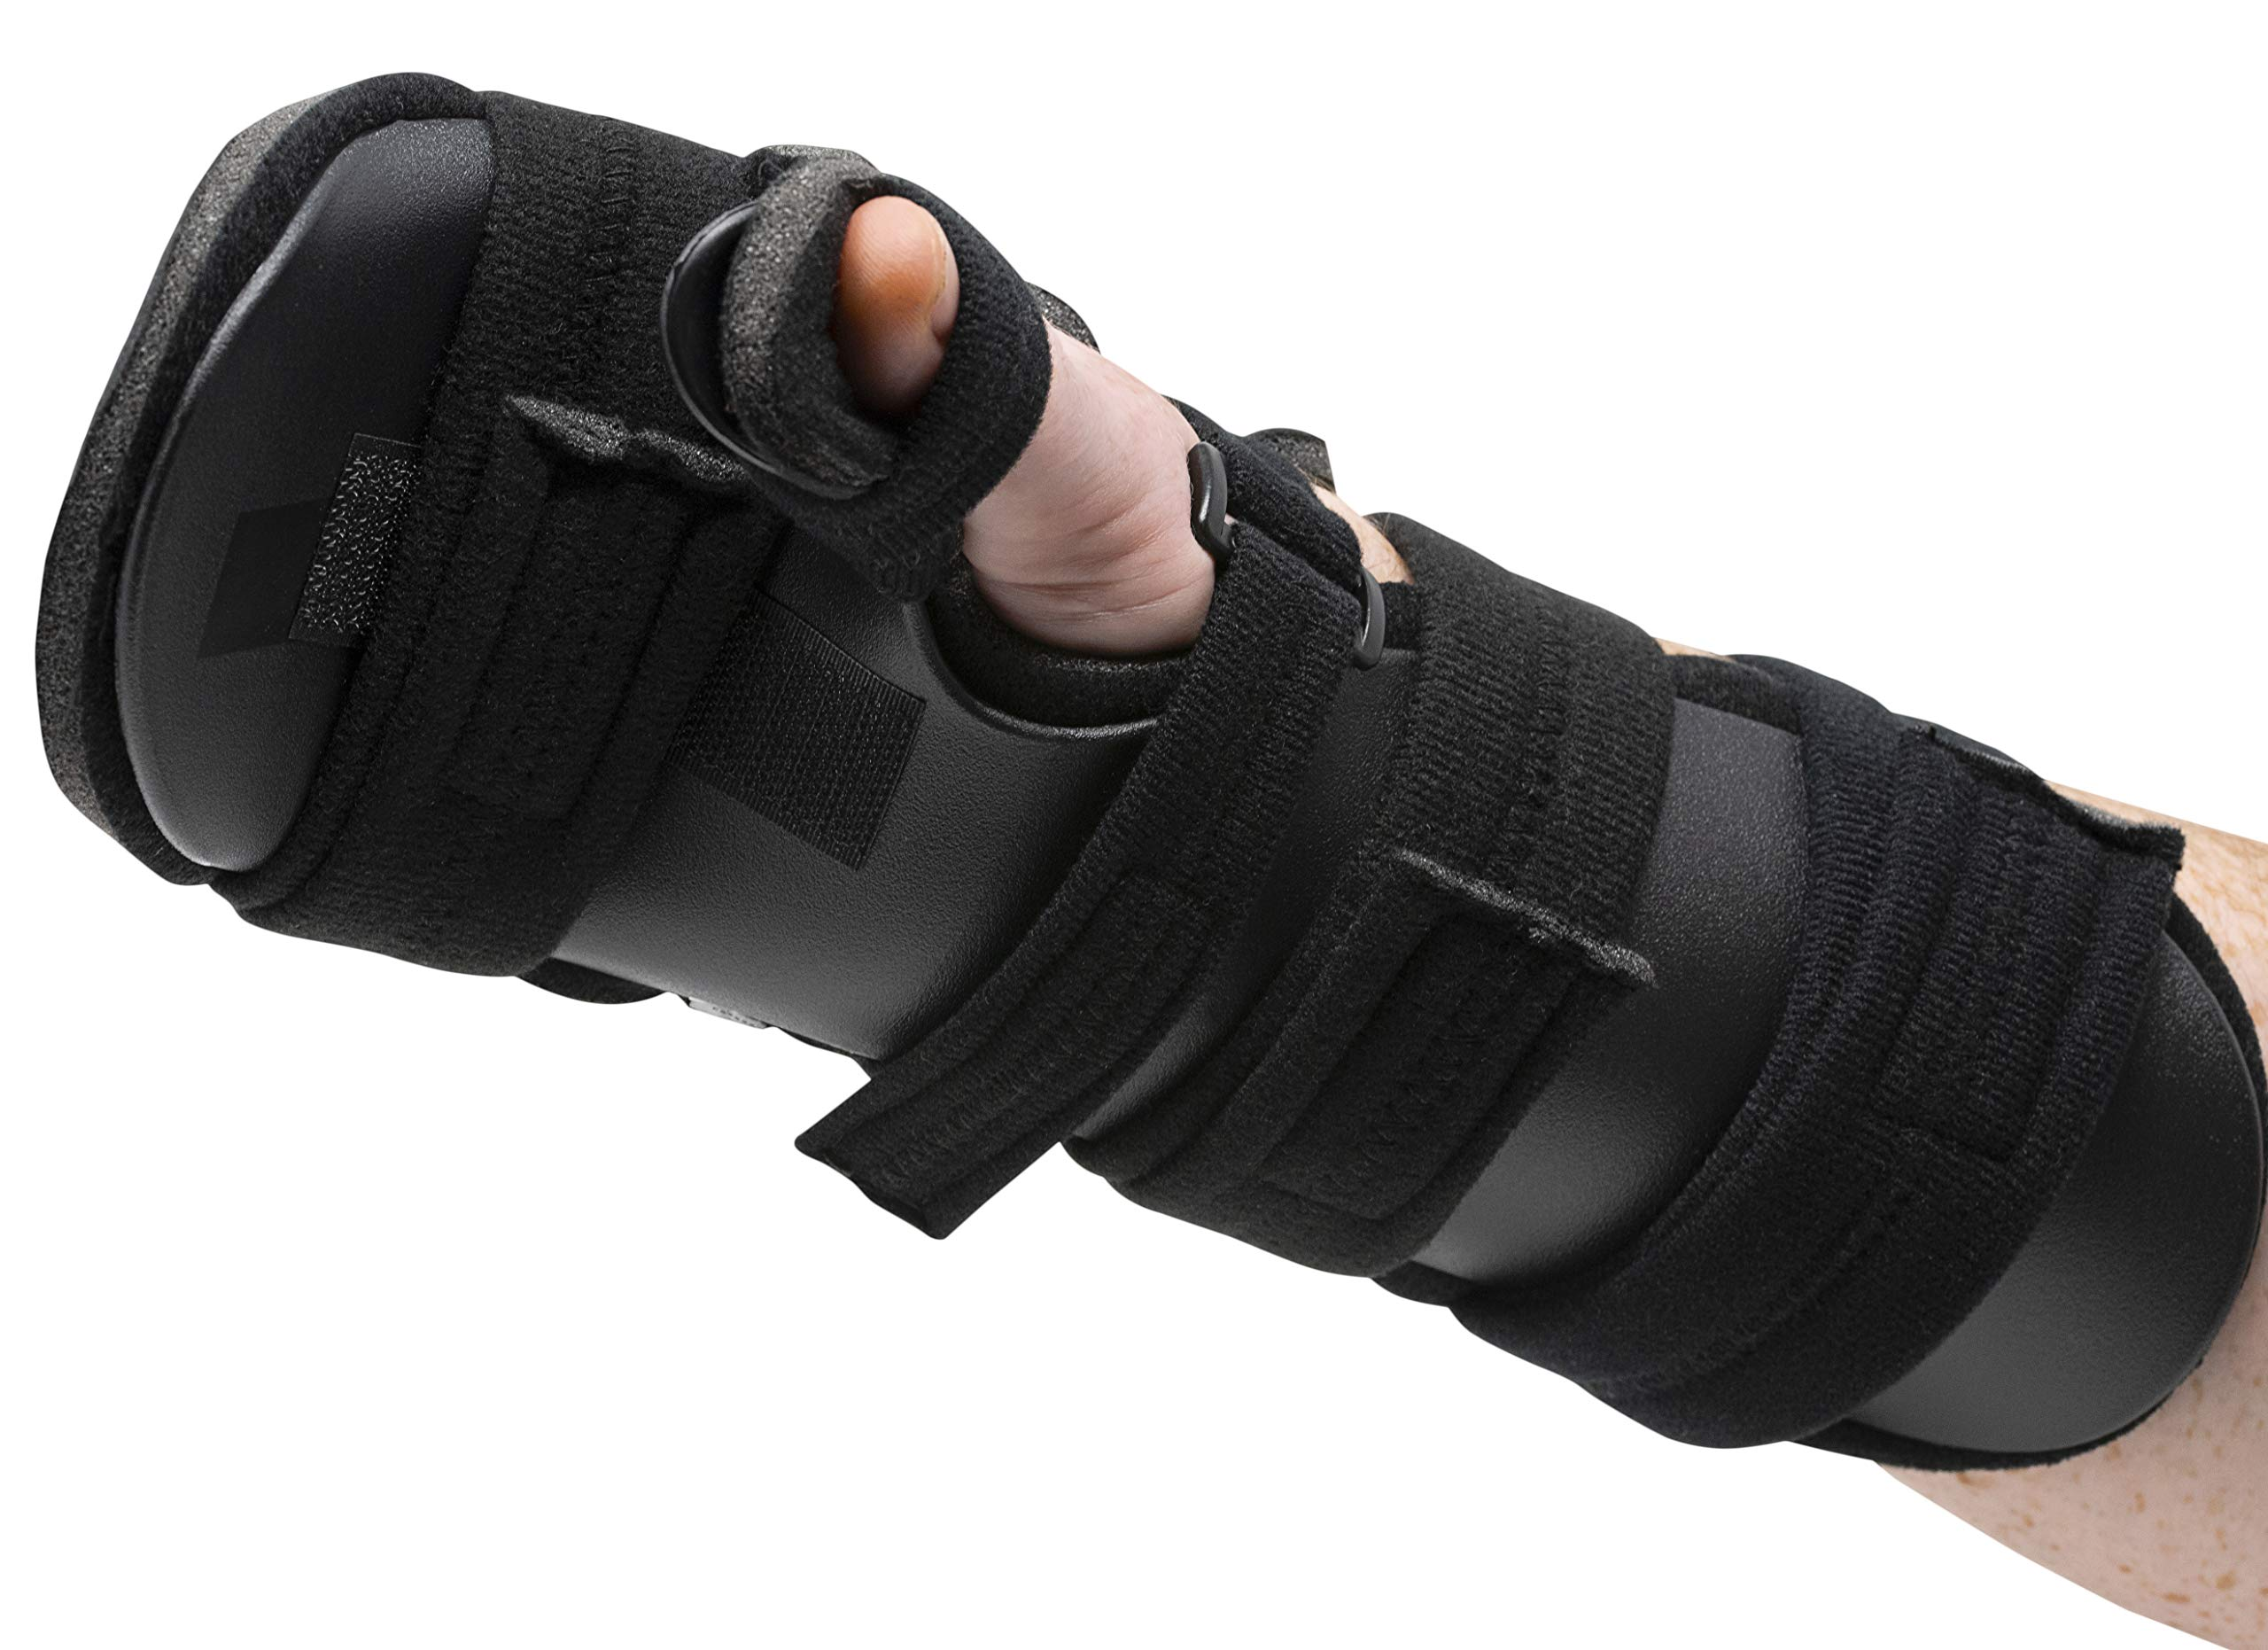 Stroke Hand Splint- Soft Resting Hand Splint for Flexion Contractures, Comfortably Stretch and Rest Hands for Long Term Ease with Functional Hand Splint, an American Heritage Industries(Right, Medium) by American Heritage Industries (Image #7)